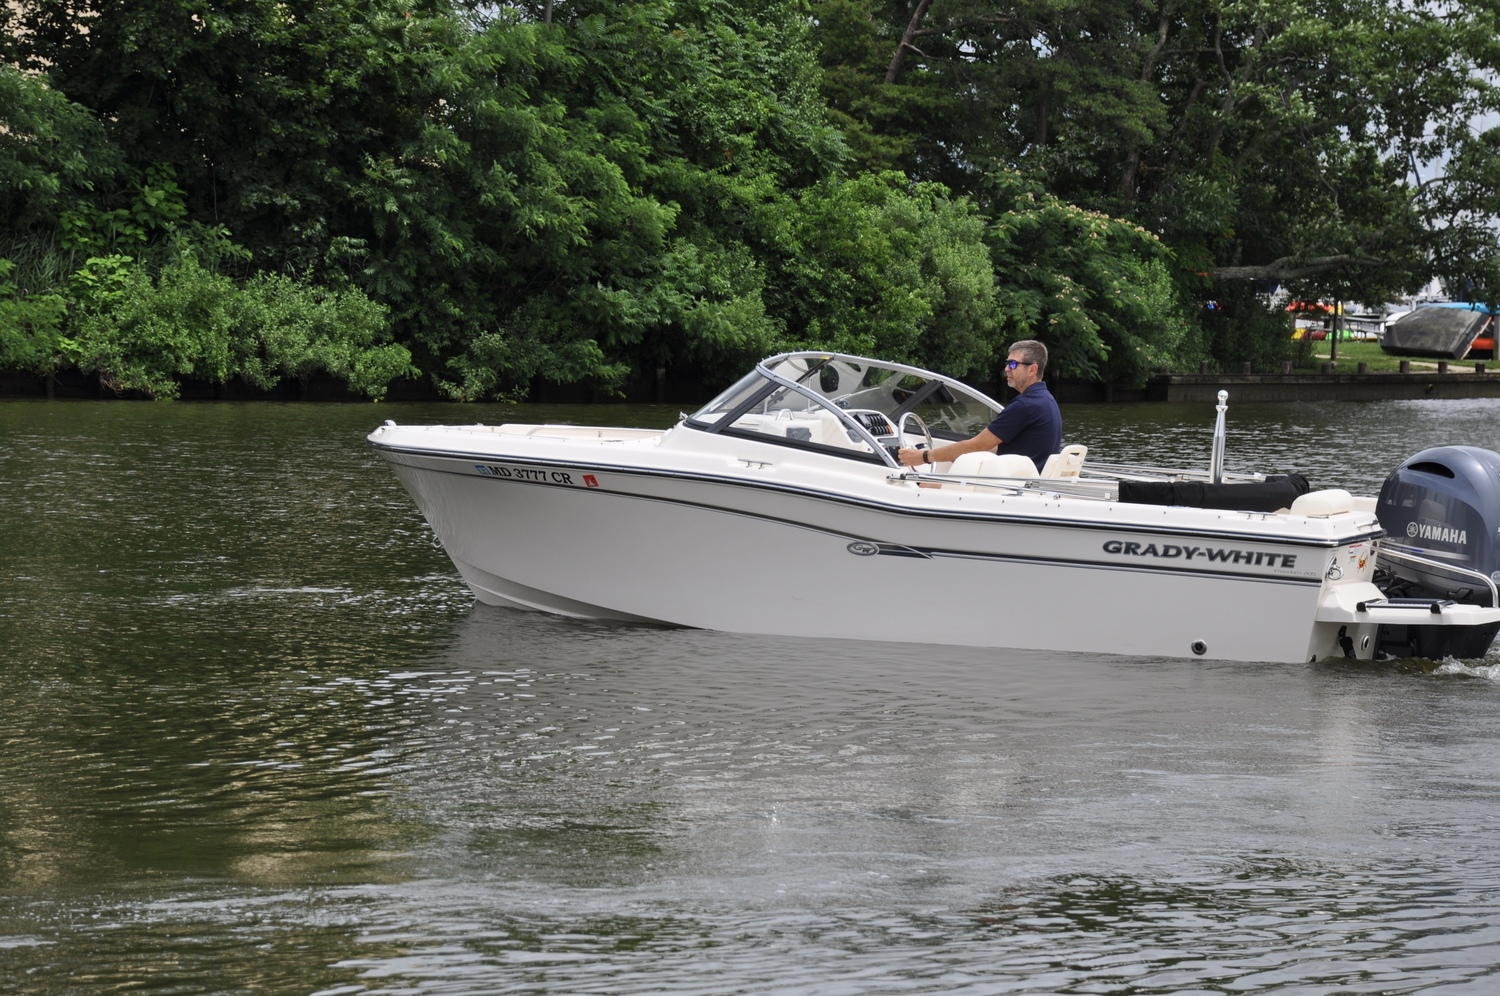 2015 Grady White Freedom 205 — Dave Townley Yachts